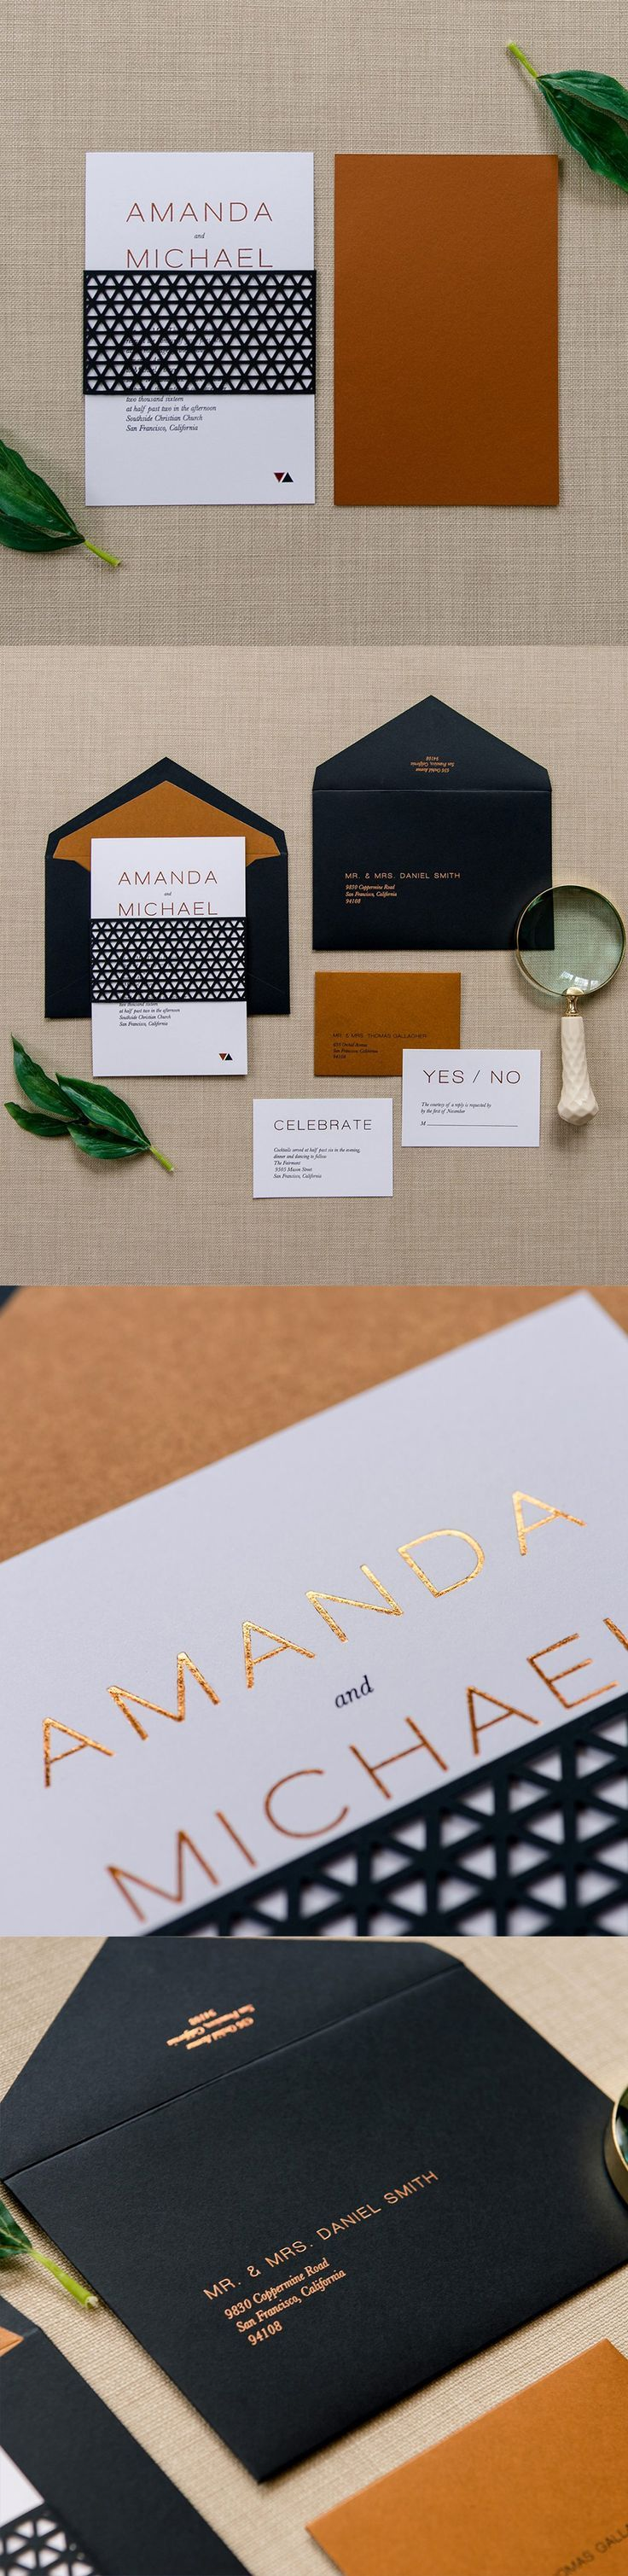 Sleek and #modern wedding invitation suite by /engagingpapers/ a geometrically patterned bellyband. The front depicts a combination of sophisticated and traditionally modern fonts with an added touch of copper foil to make your details pop. Tucked into the back of the bellyband is your smaller copper colored envelope, holding your accommodation cards. The set is stuffed inside an elegant black envelope with a matching copper liner to complete this timelessly moder